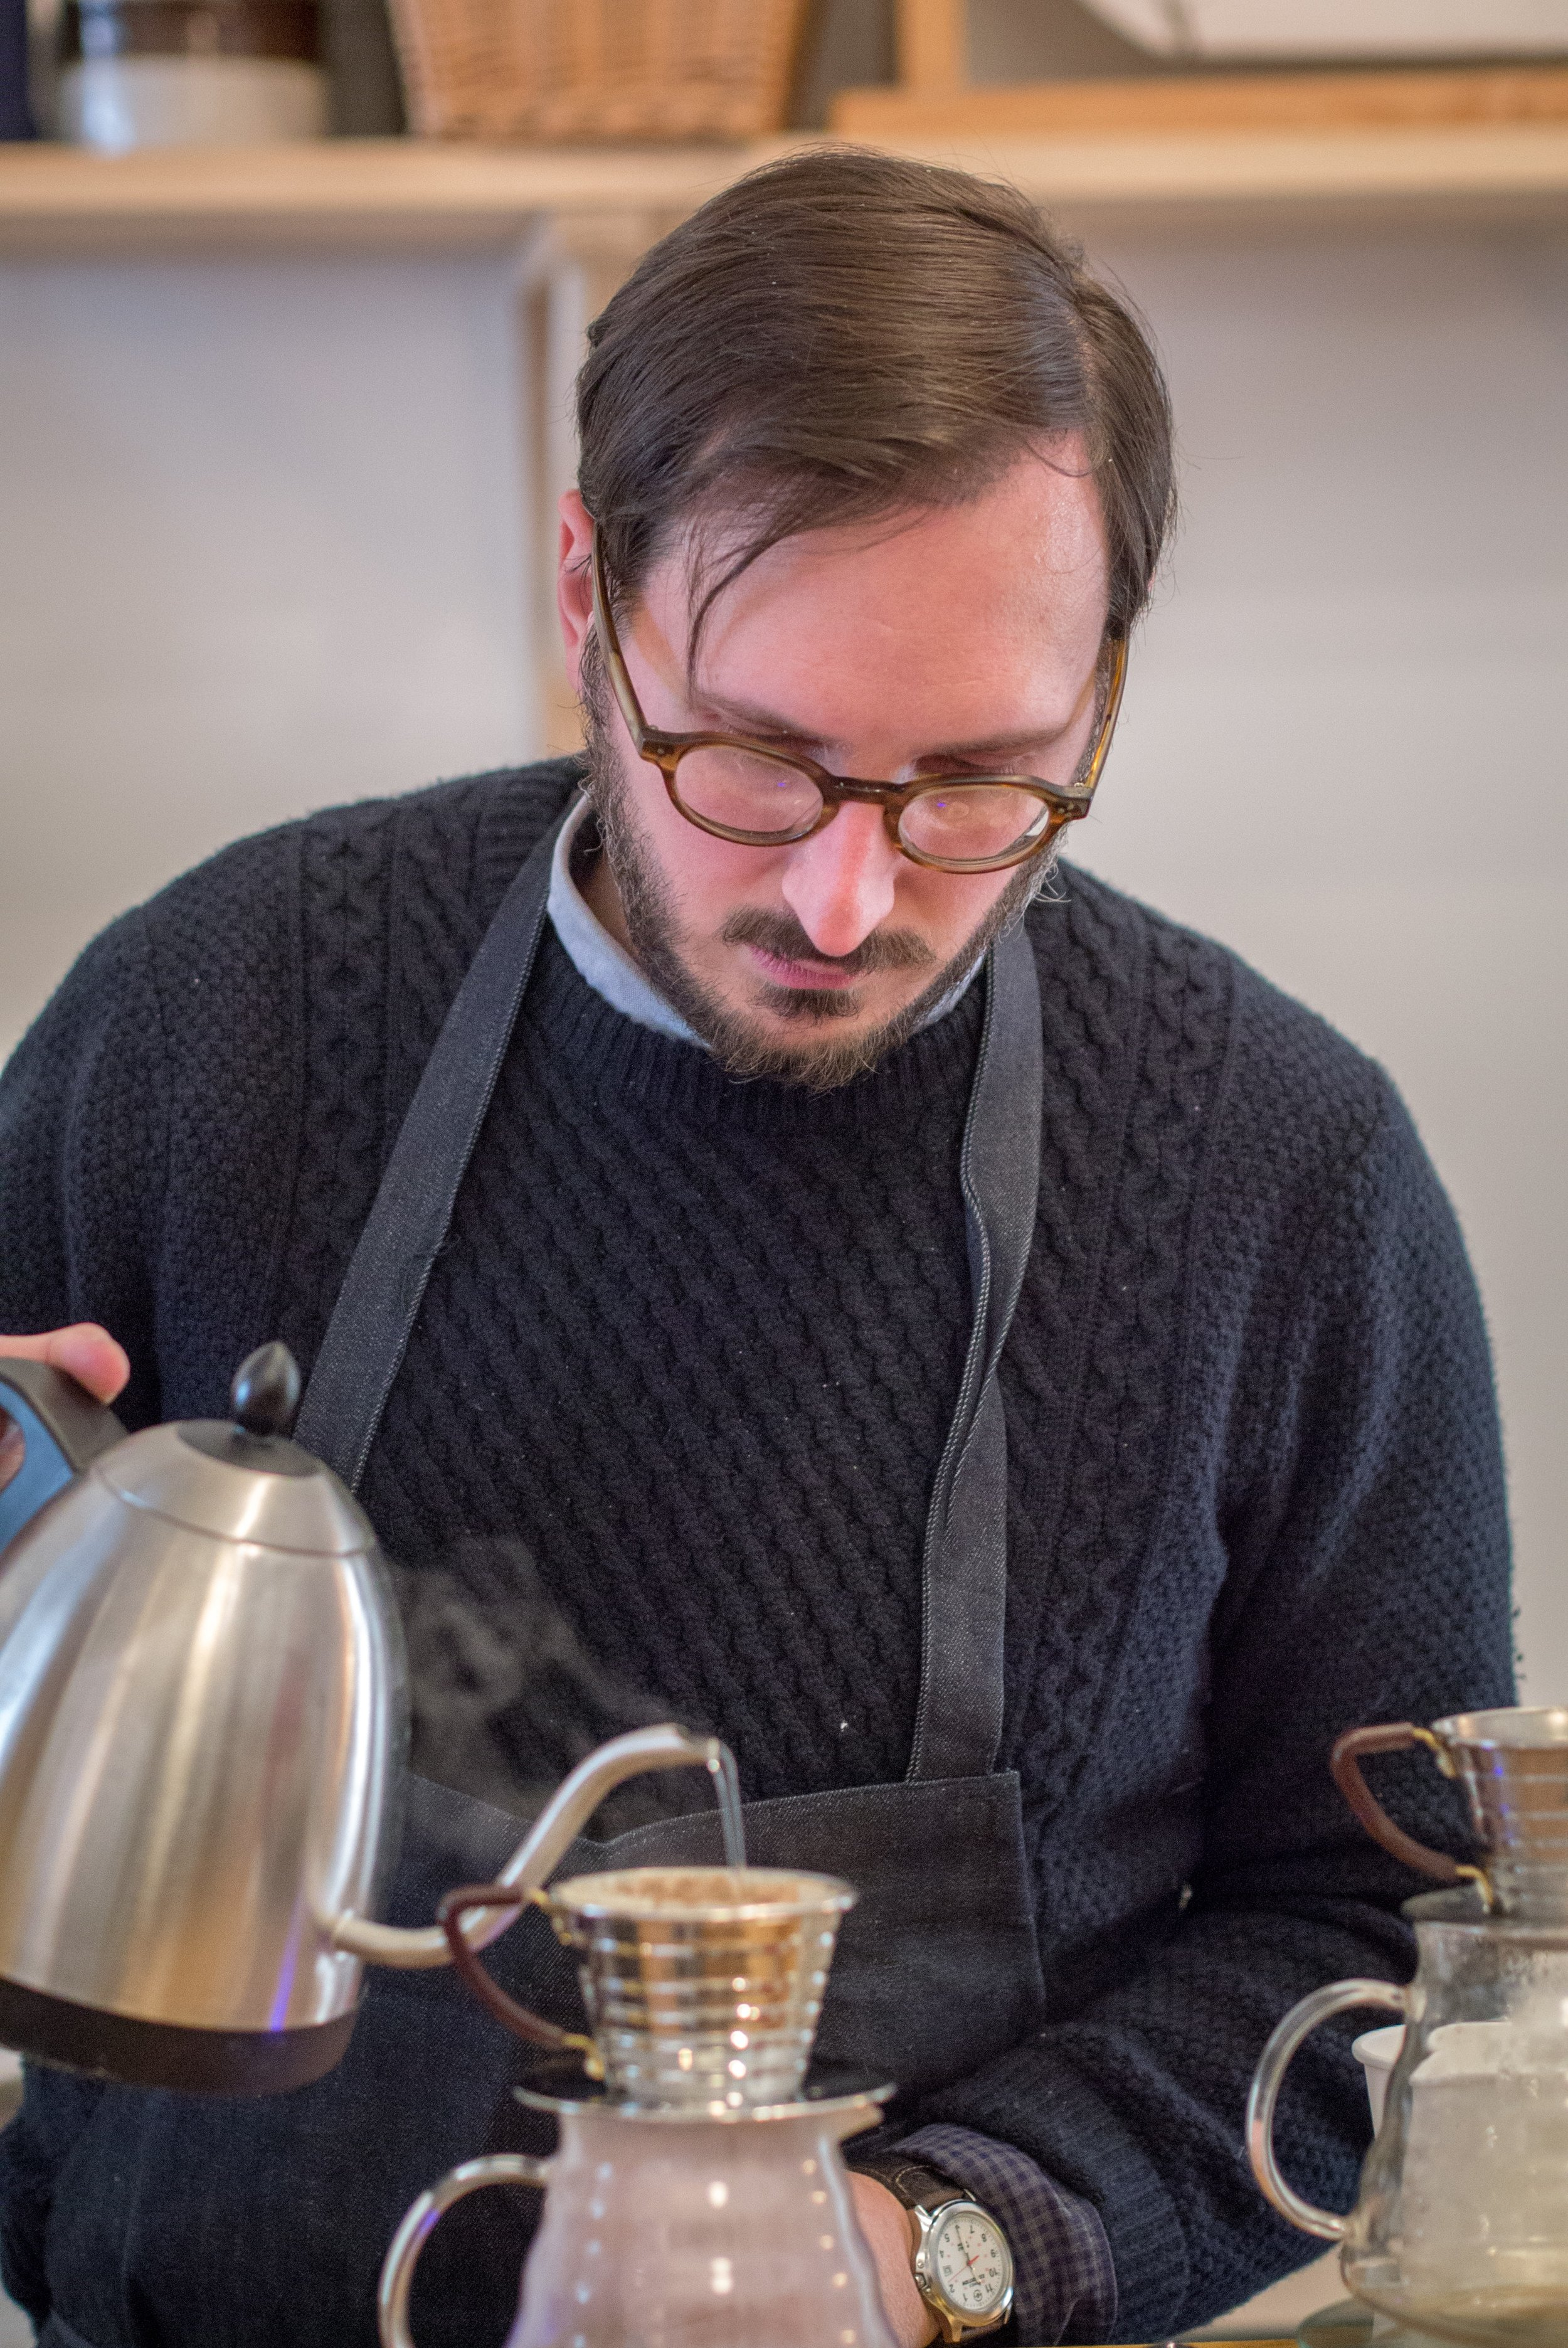 man preparing a pour over coffee with a tea kettle